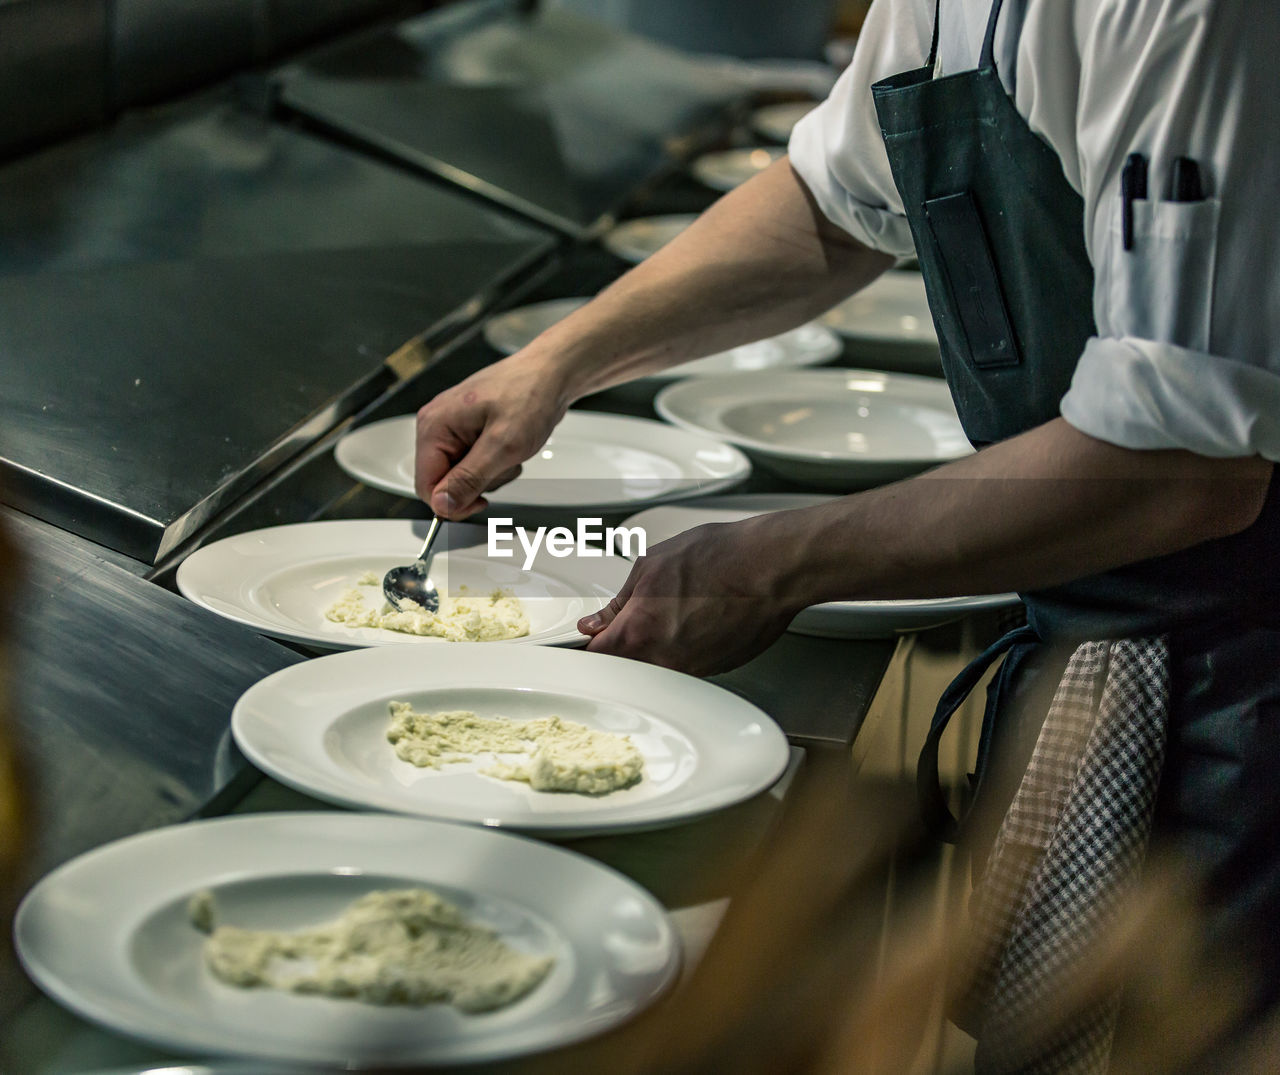 Midsection Of Chef Serving Food In Plate